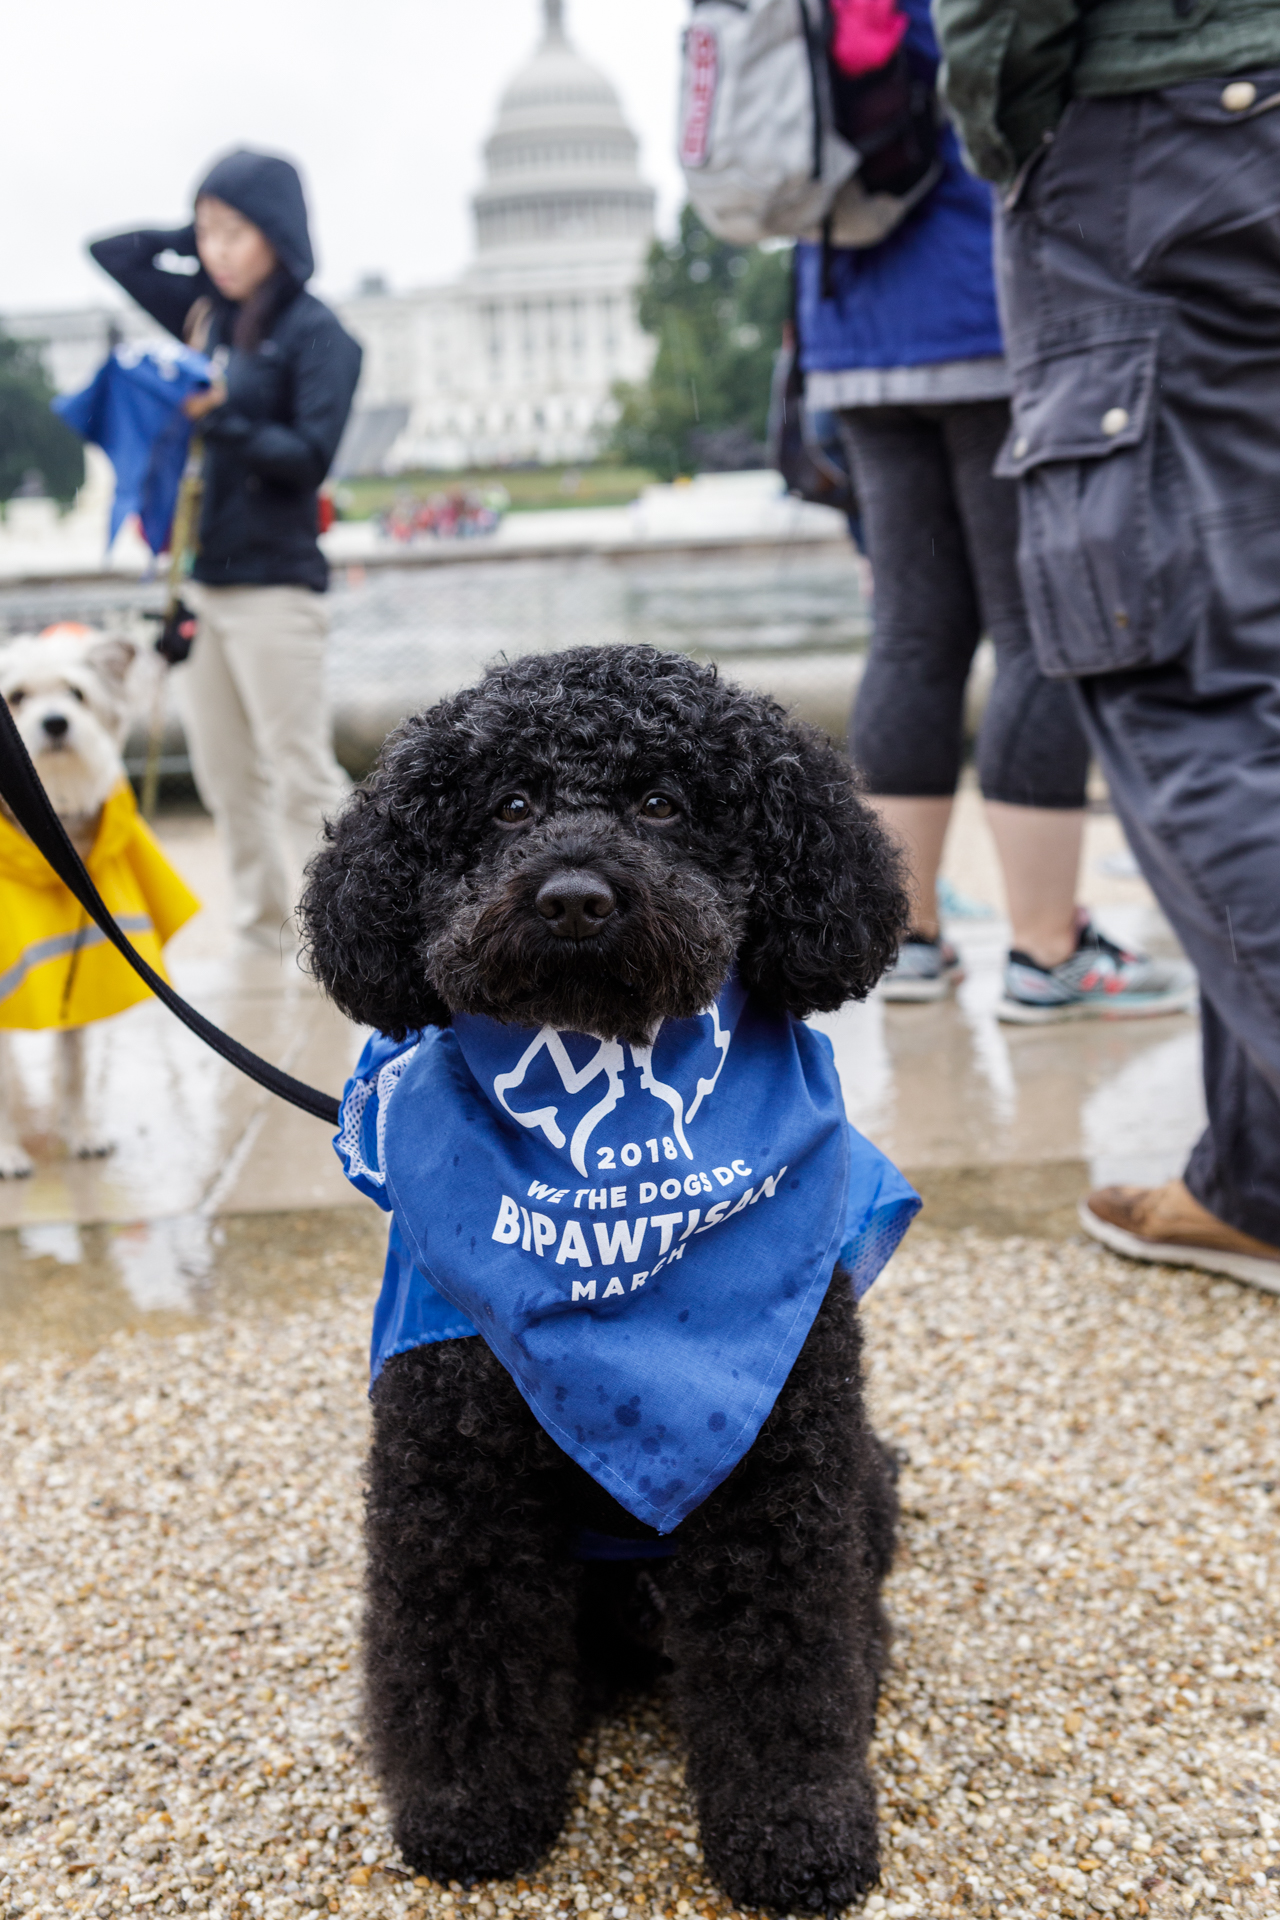 "Despite the never-ending rain, the second annual Bipawtisan March brought dogs from both sides of the aisle together to march from Capitol Hill to 'yappy hour' at Wunder Garten for beer and pup-friendly treats. The event, organized by a female-run non-profit WeTheDogsDC, had approximately 100 participants and raised $10,000 for more than 30 rescue organizations around town. According to the organizers, ""the mission of the Bipawtisan March is to show that no matter what side of the aisle you stand on, the love we have for our pets transcends all political agendas and is a cause that we can all support."" Attendees were encouraged to don costumes showing what they were marching for and to carry family-friendly signs. 100 percent of the event proceeds were donated to rescue organizations. (Image: Hannele Lahti/ @adogphotographer)"